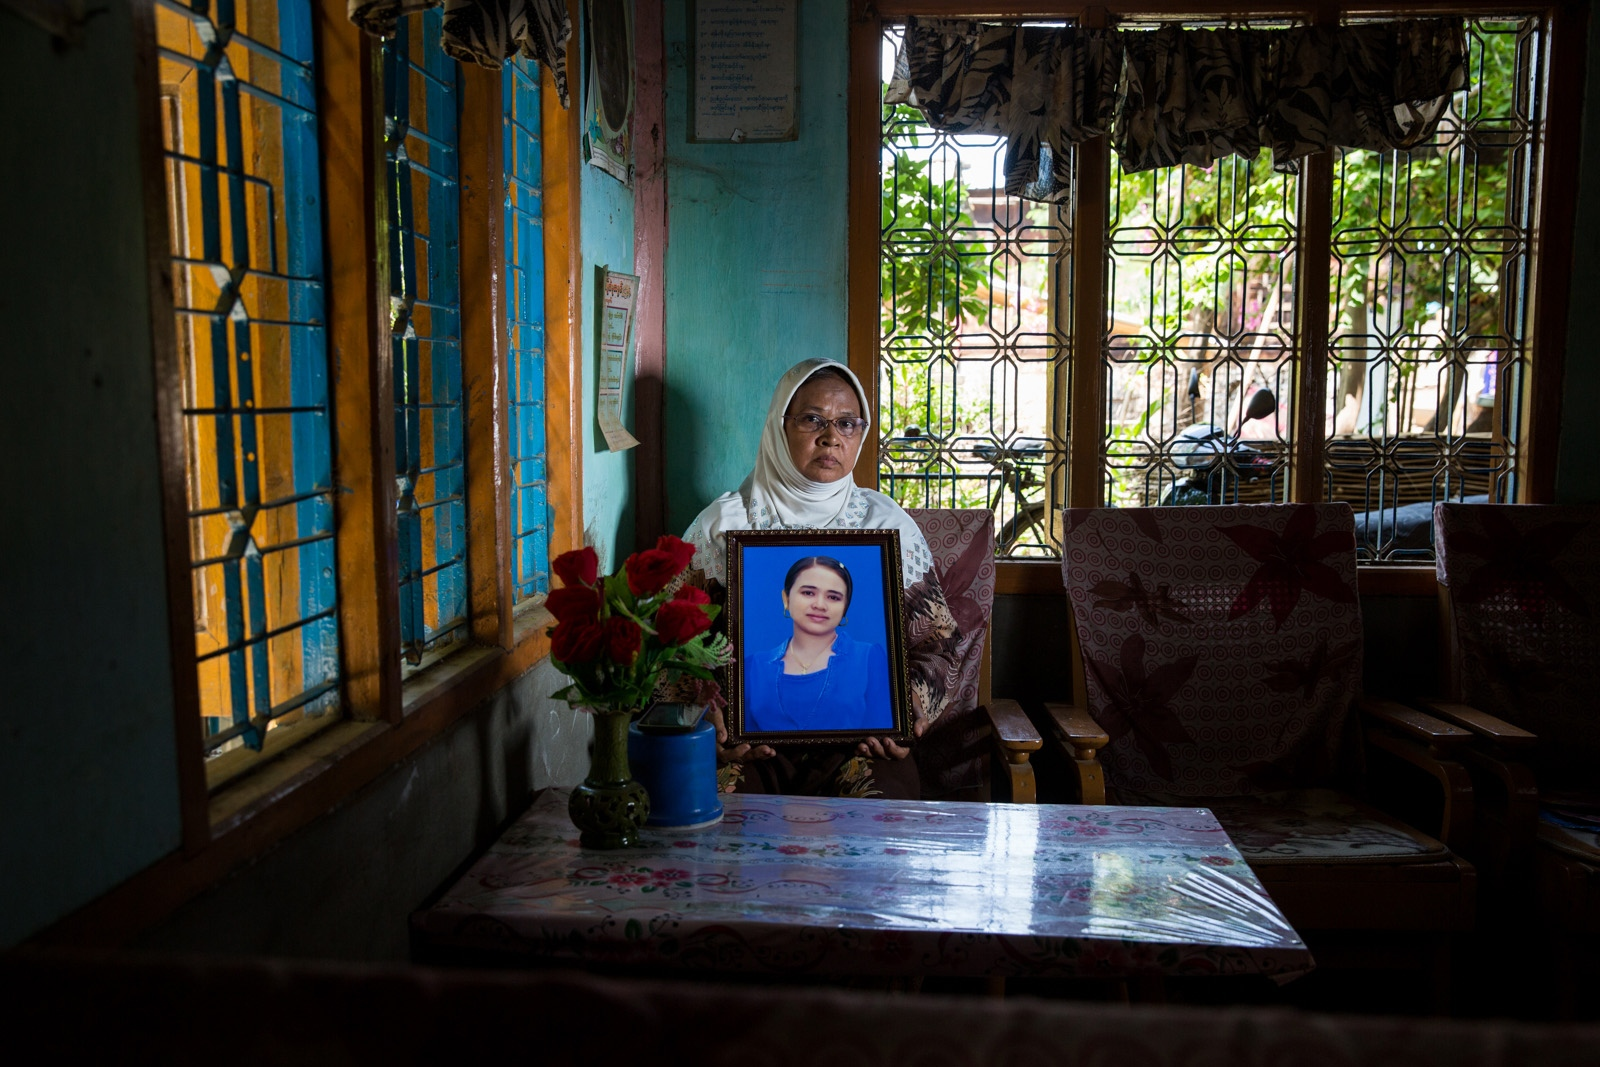 Arbitrarily detained Phyu Phy Khaing's adopted mother holds her daughter's portrait. Myanmar military intelligence arrested Phyu Phyu Khaing, 26, while she was traveling with her family to attend her brother's wedding in Kunhein, Shan State on August 4, 2014. The Taunggyi District Court sentenced her in a trial that failed to meet fair trial standards to 14 years' imprisonment with hard labor under sections 5(J) and 5(L) of the 1950 Emergency Provisions Act. In October 2016, the Myanmar government repealed the notoriously controversial 1950 Emergency Provisions Act, yet Phyu Phyu Khaing and others remain detained under the now defunct Act.